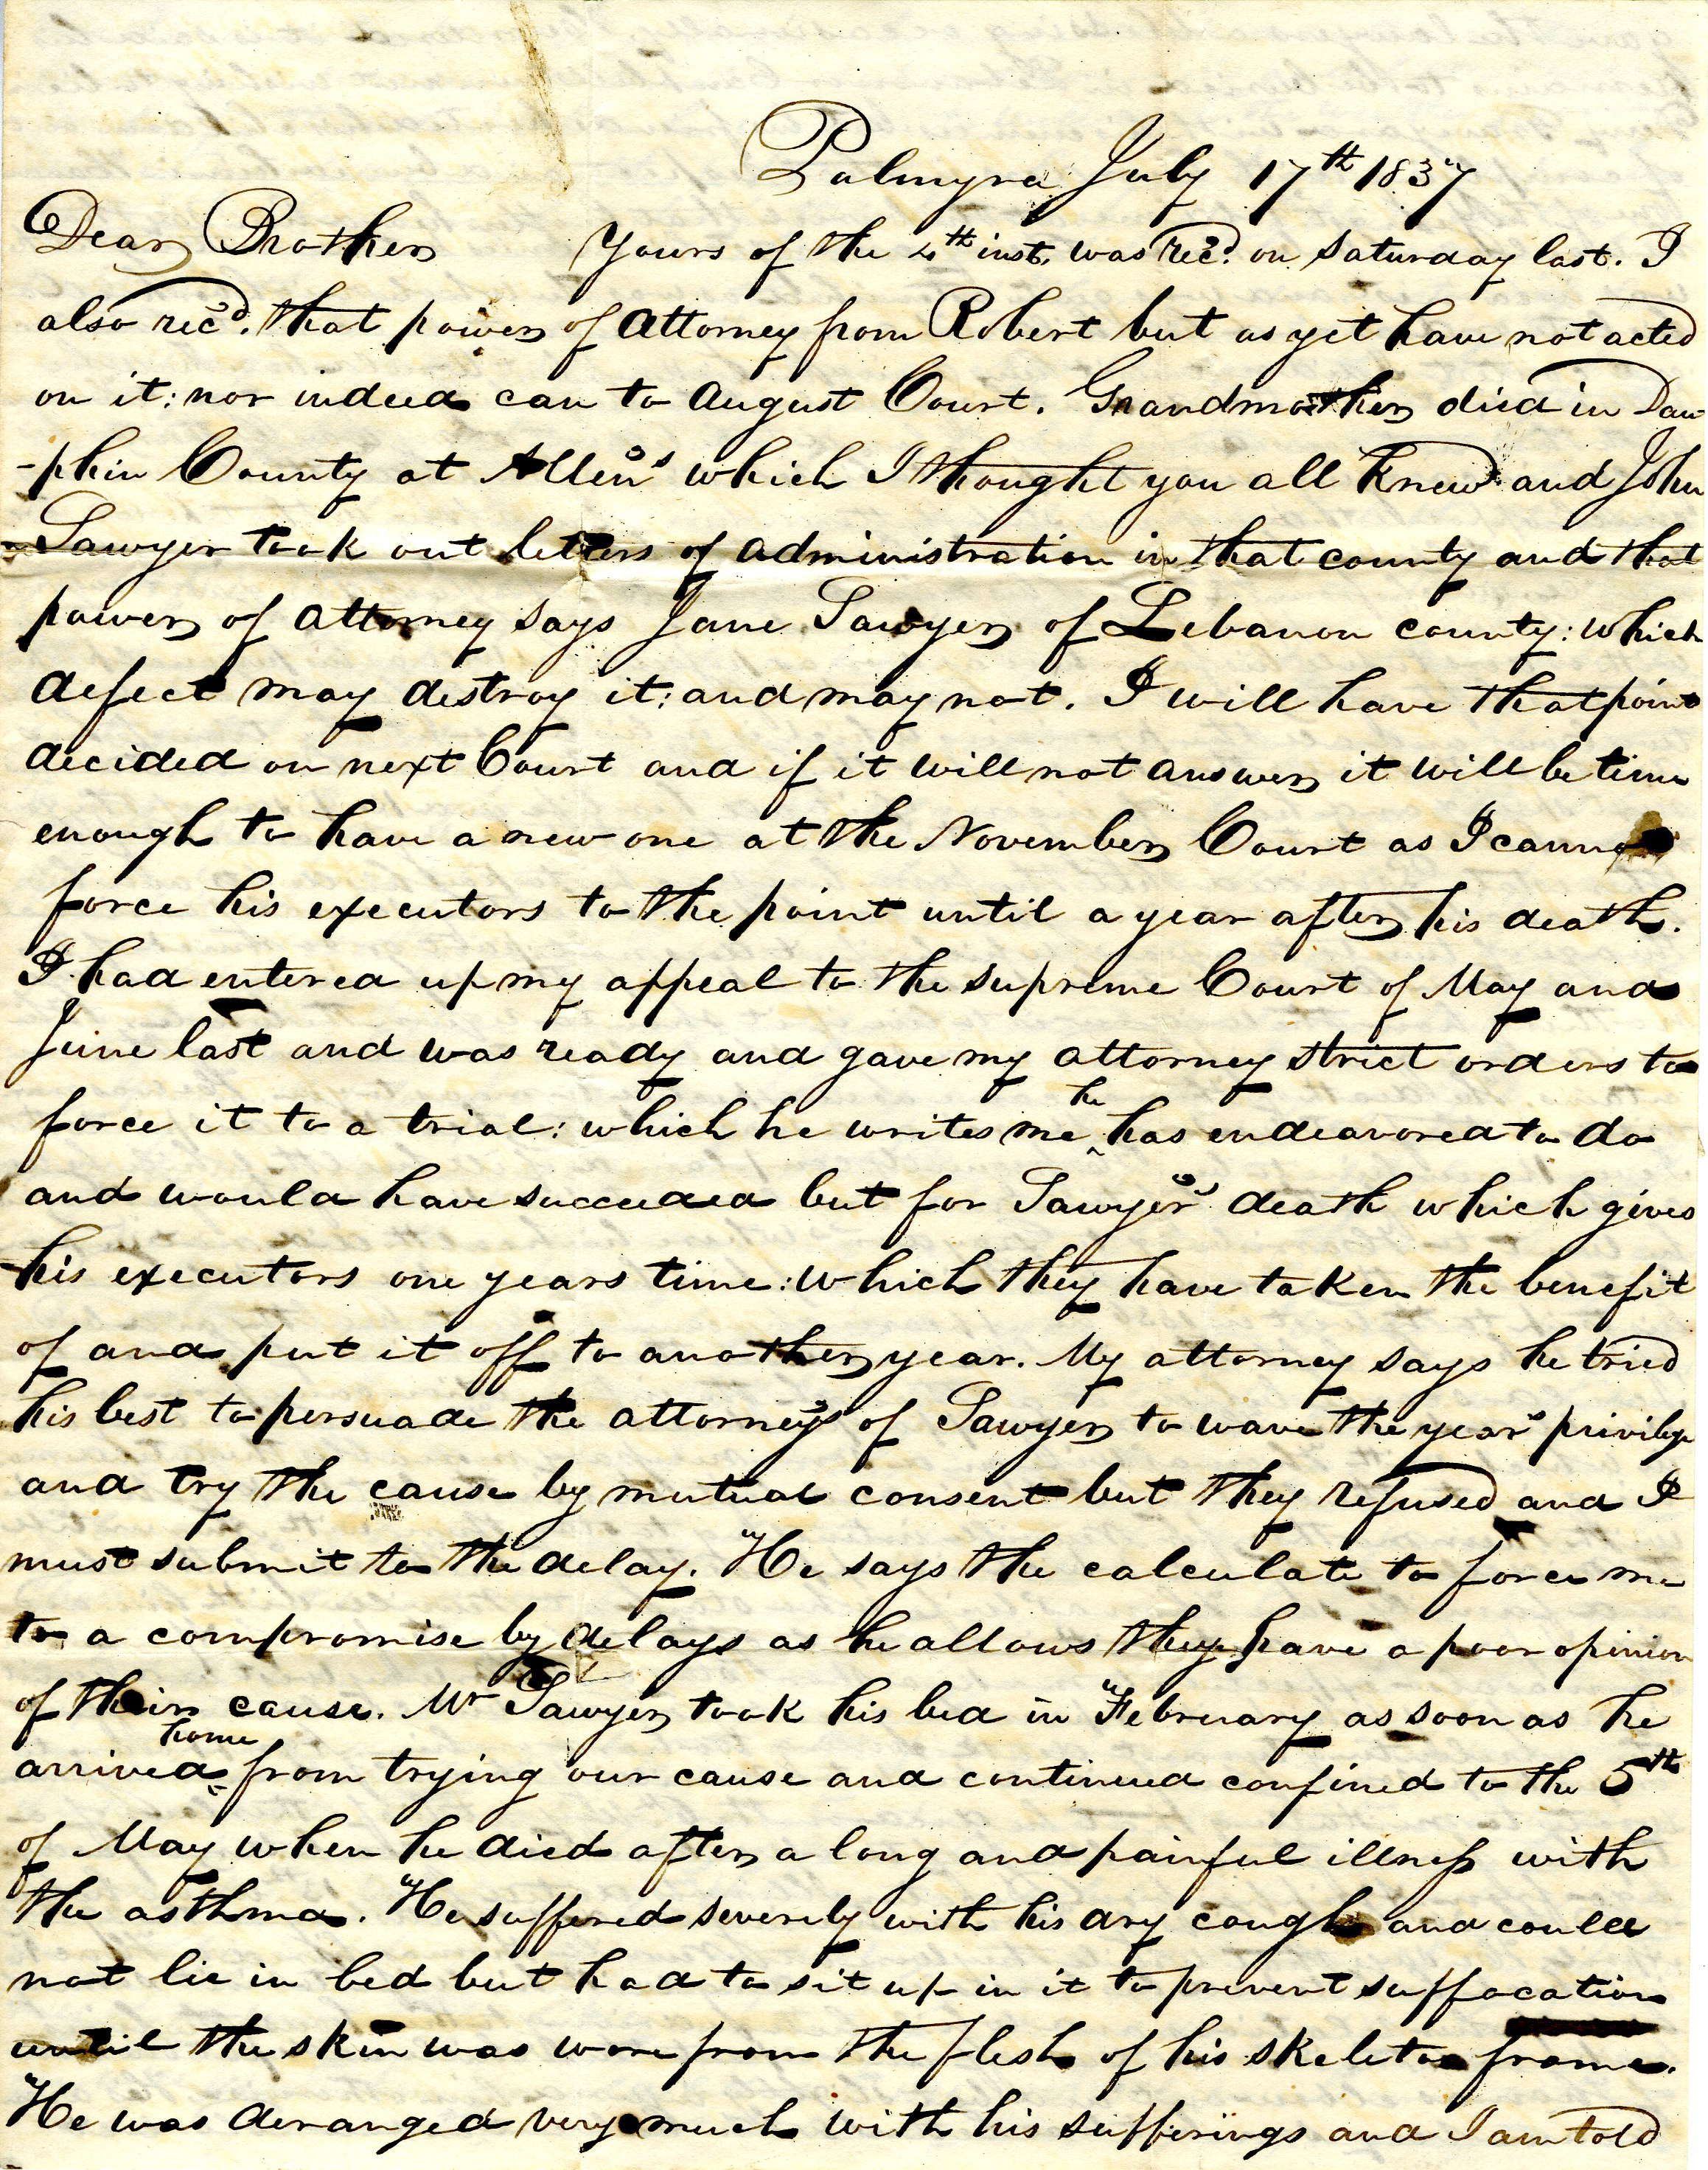 Letter From William Geddes to John Geddes, July 17, 1837 image